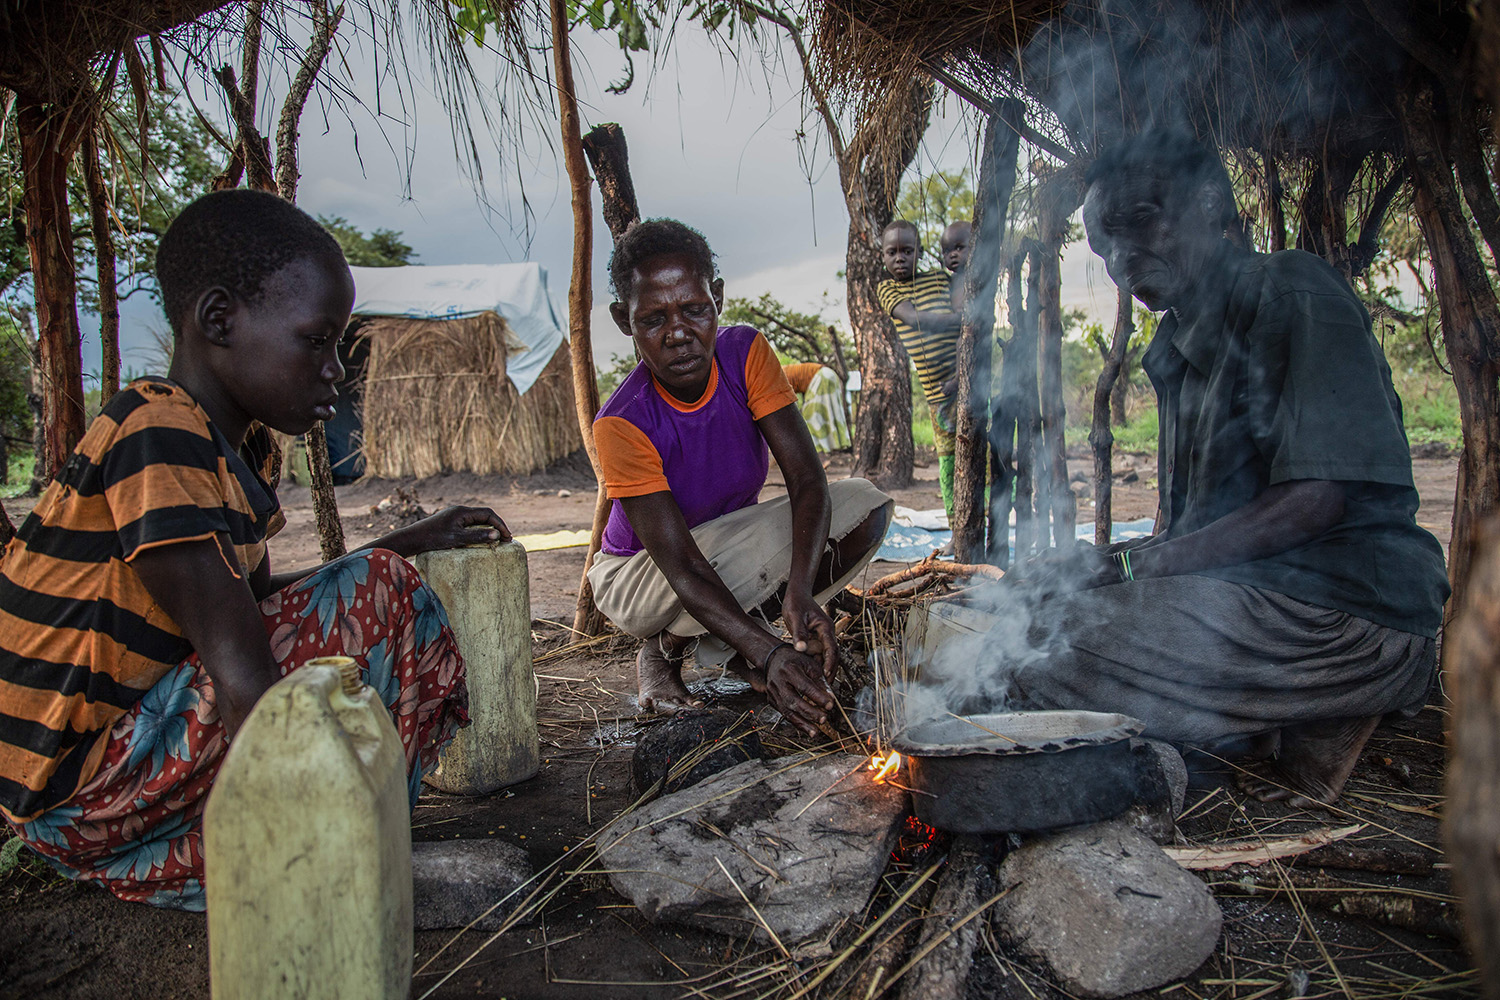 Internally displaced persons prepare food at the Korijo camp in South Sudan on Sept. 23, 2018. The country's civil war has caused its health care system to crumble over the past seven years, making it particularly susceptible to the spread of coronavirus.